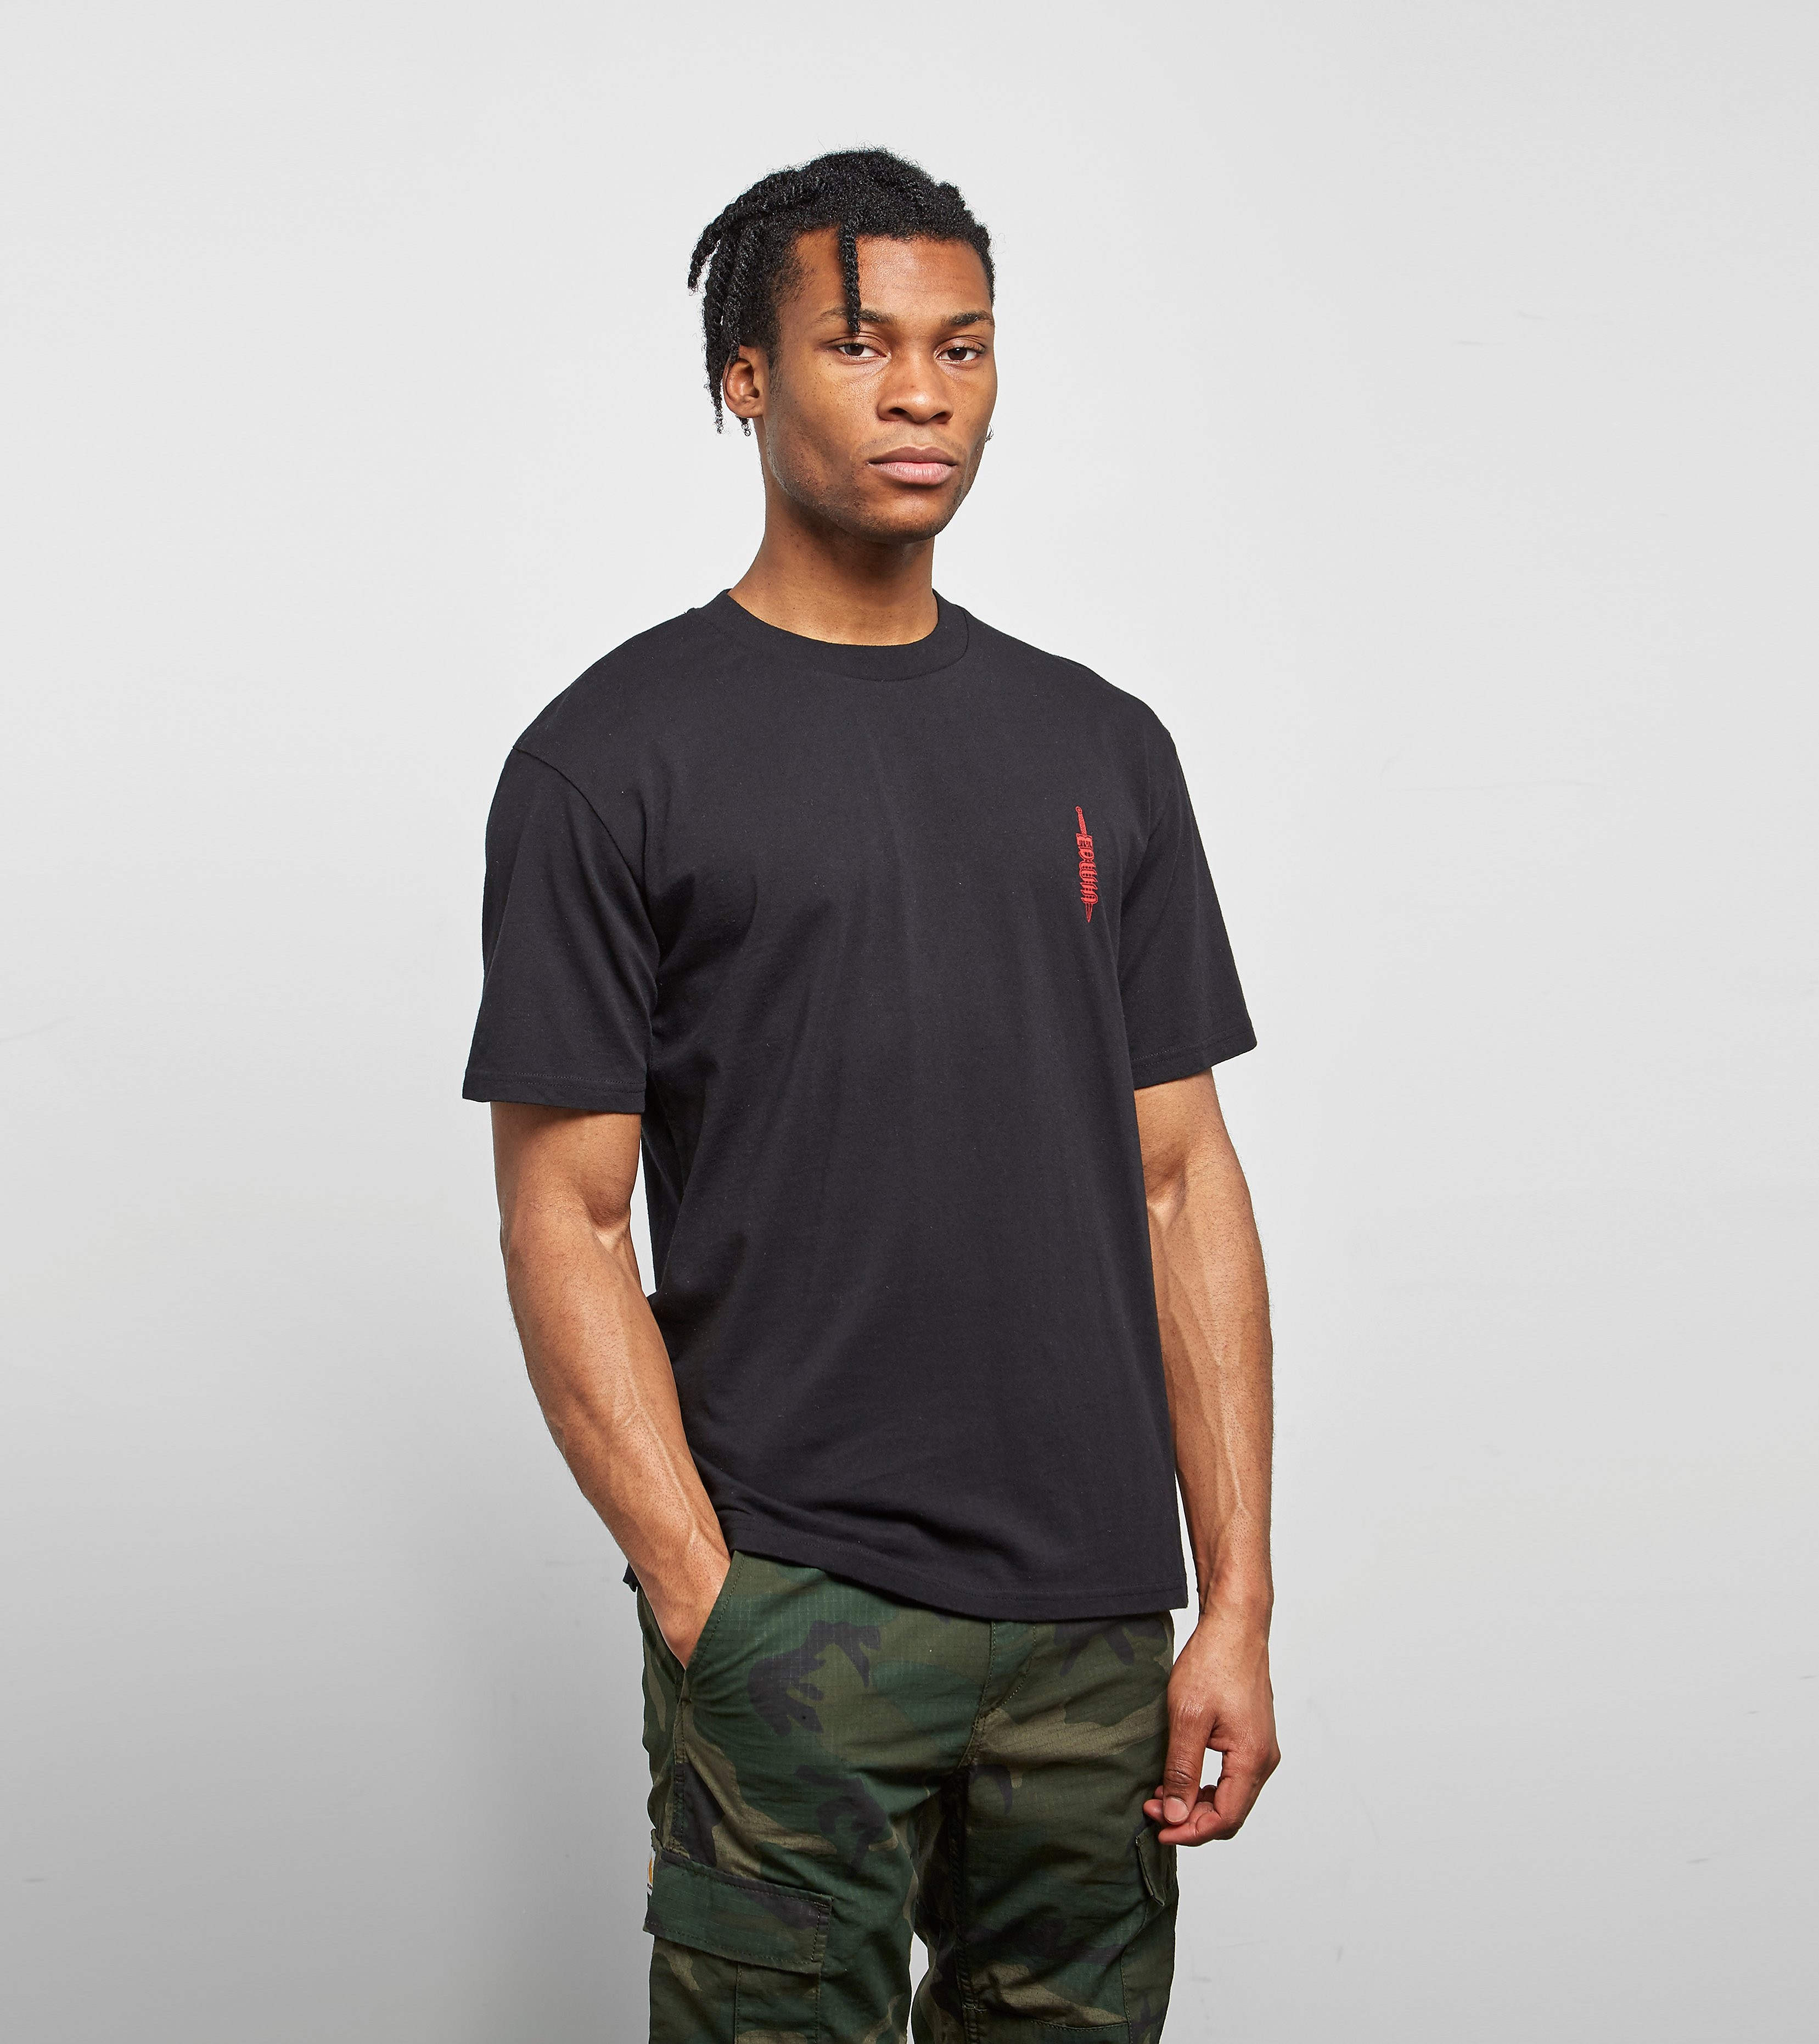 Edwin All The Aces T-shirt